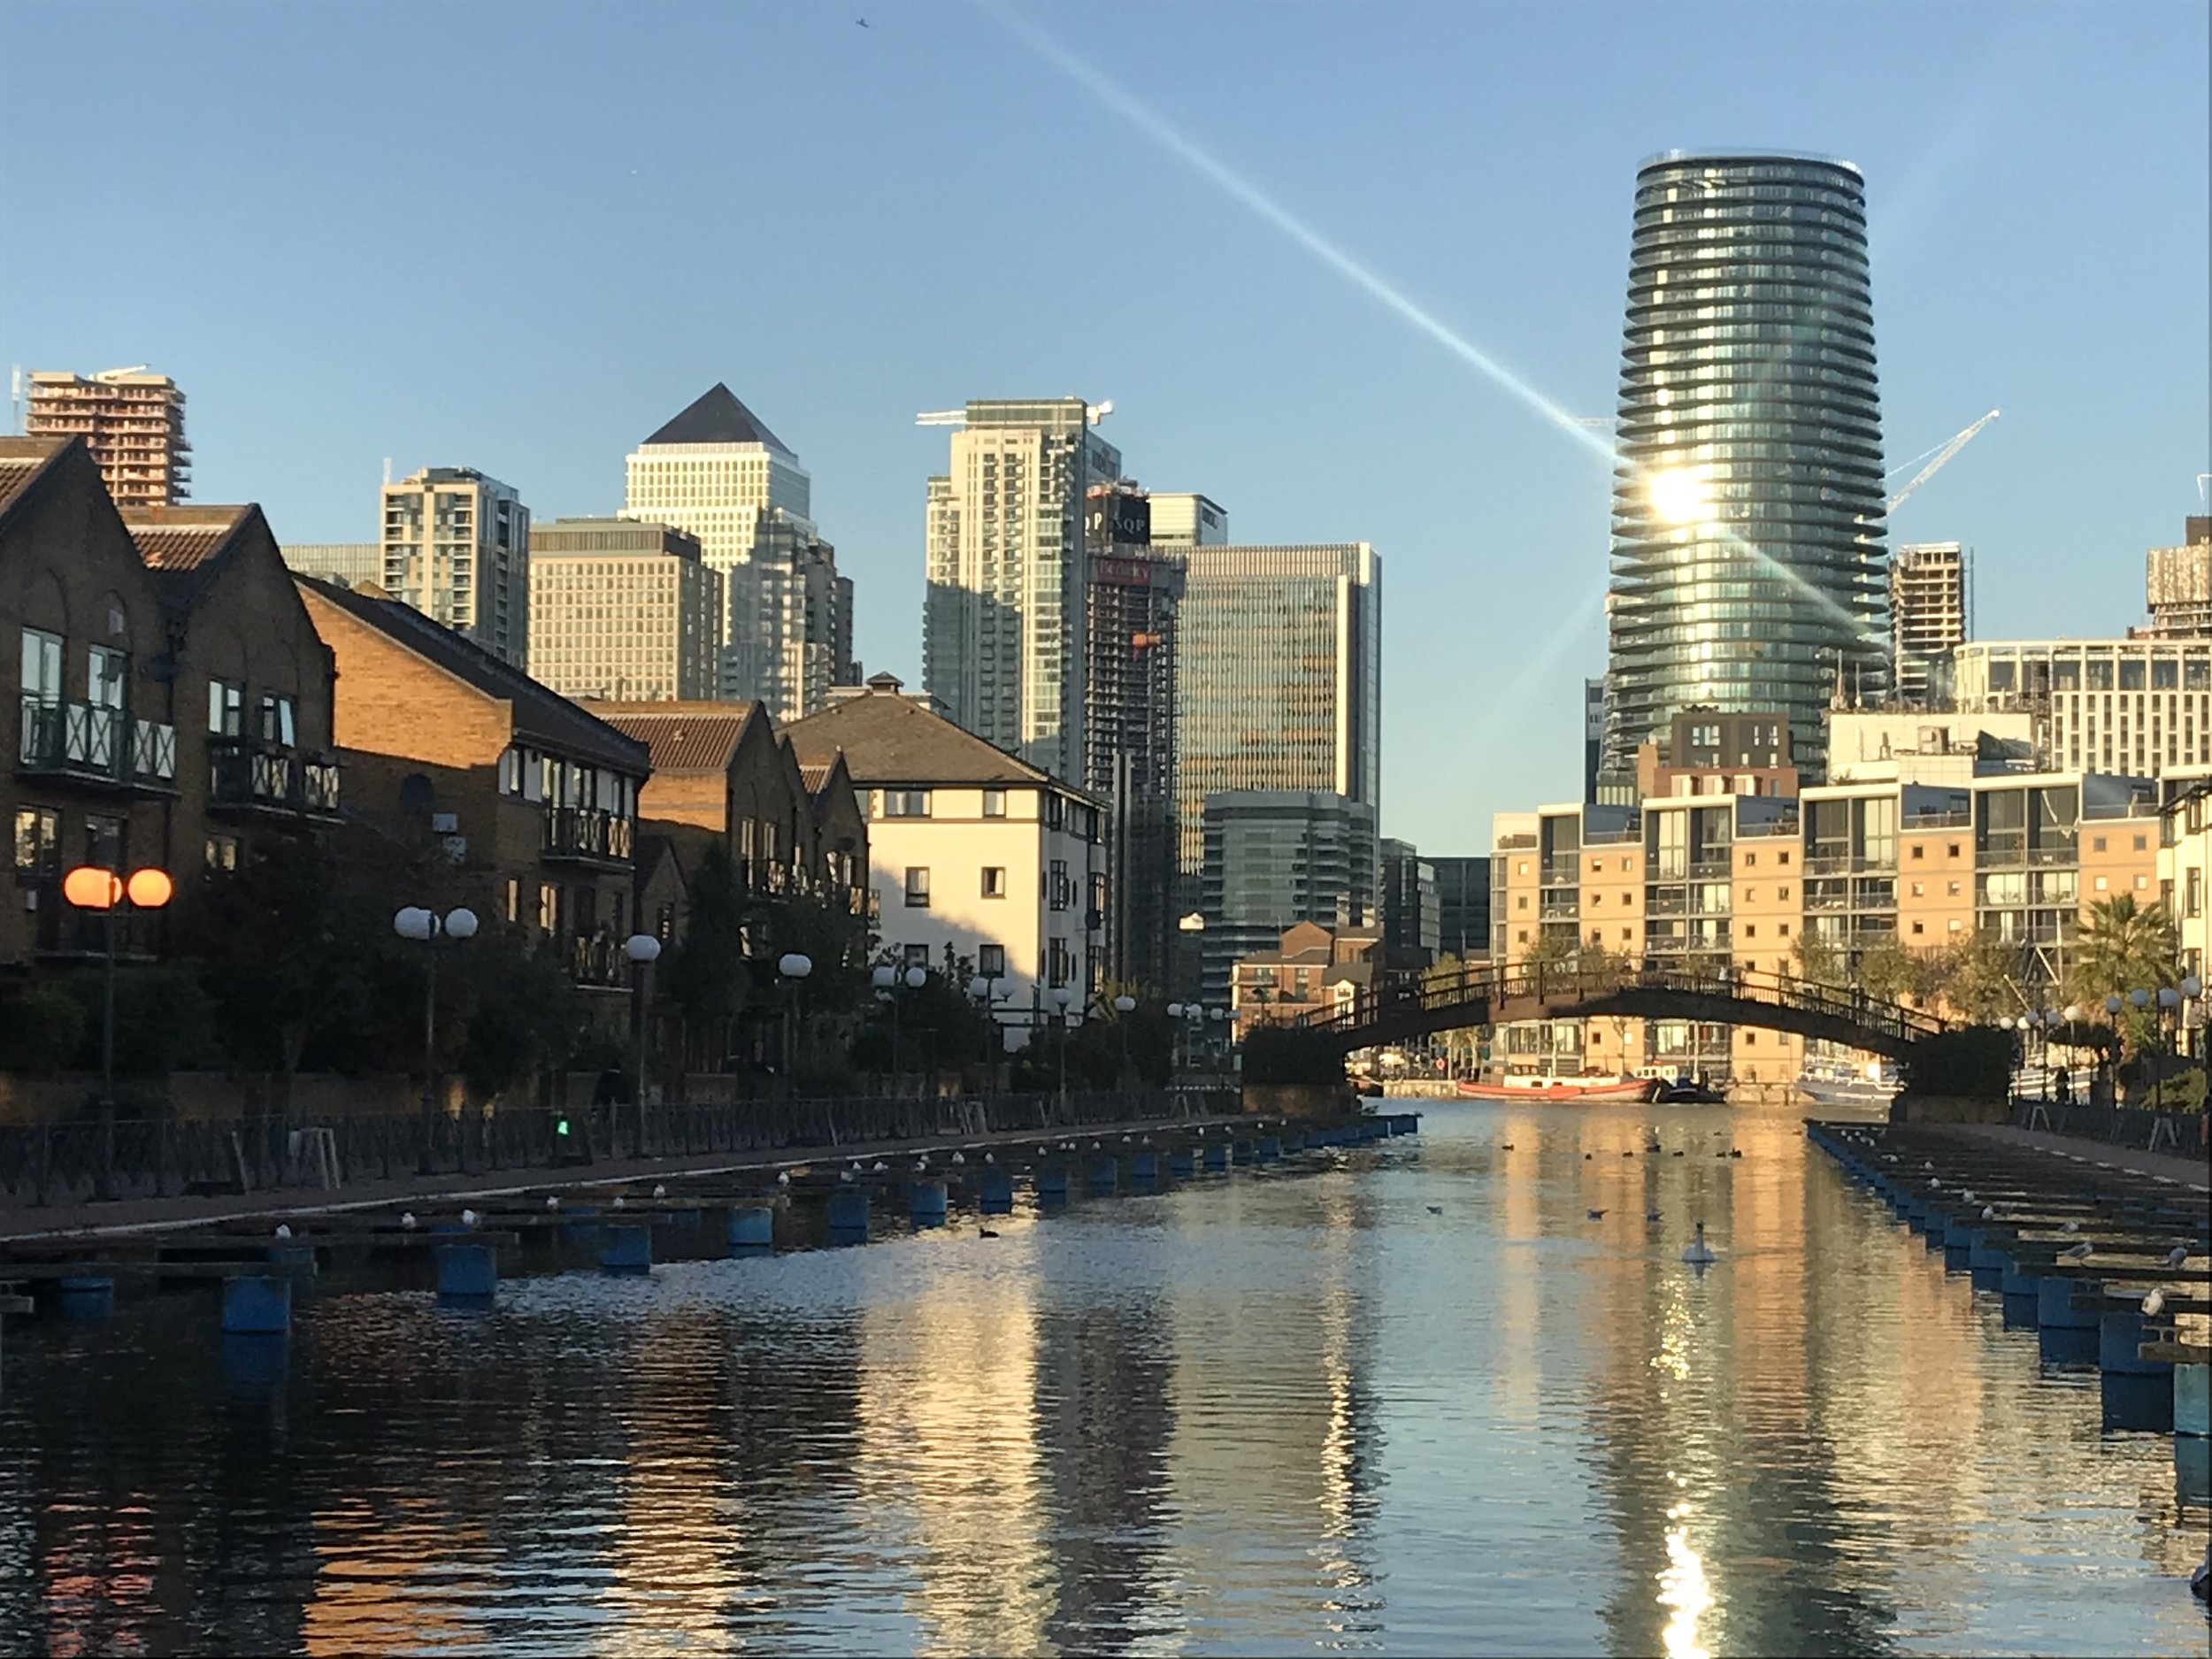 Canary Wharf from Clippers Quay